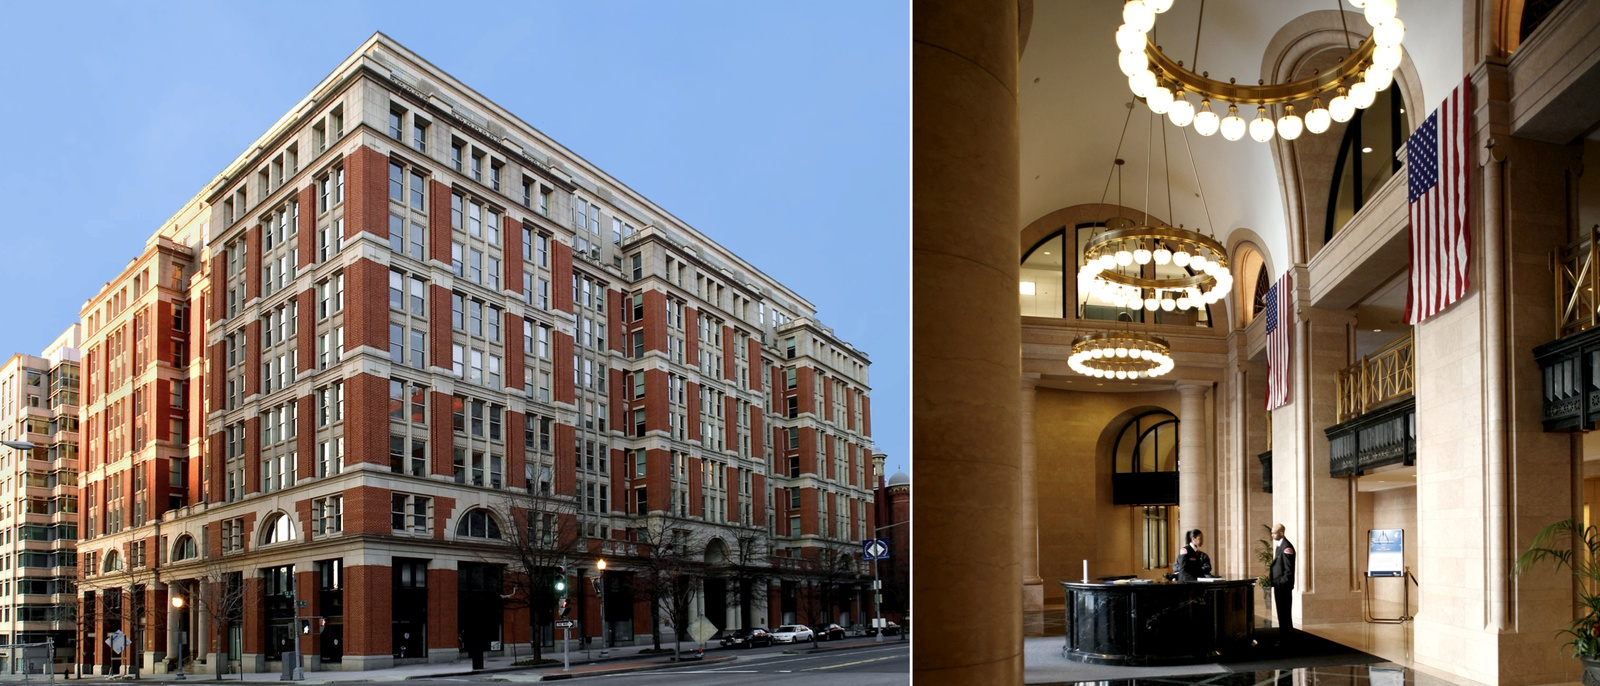 Featured Project: Miller & Chevalier. Get more details here.